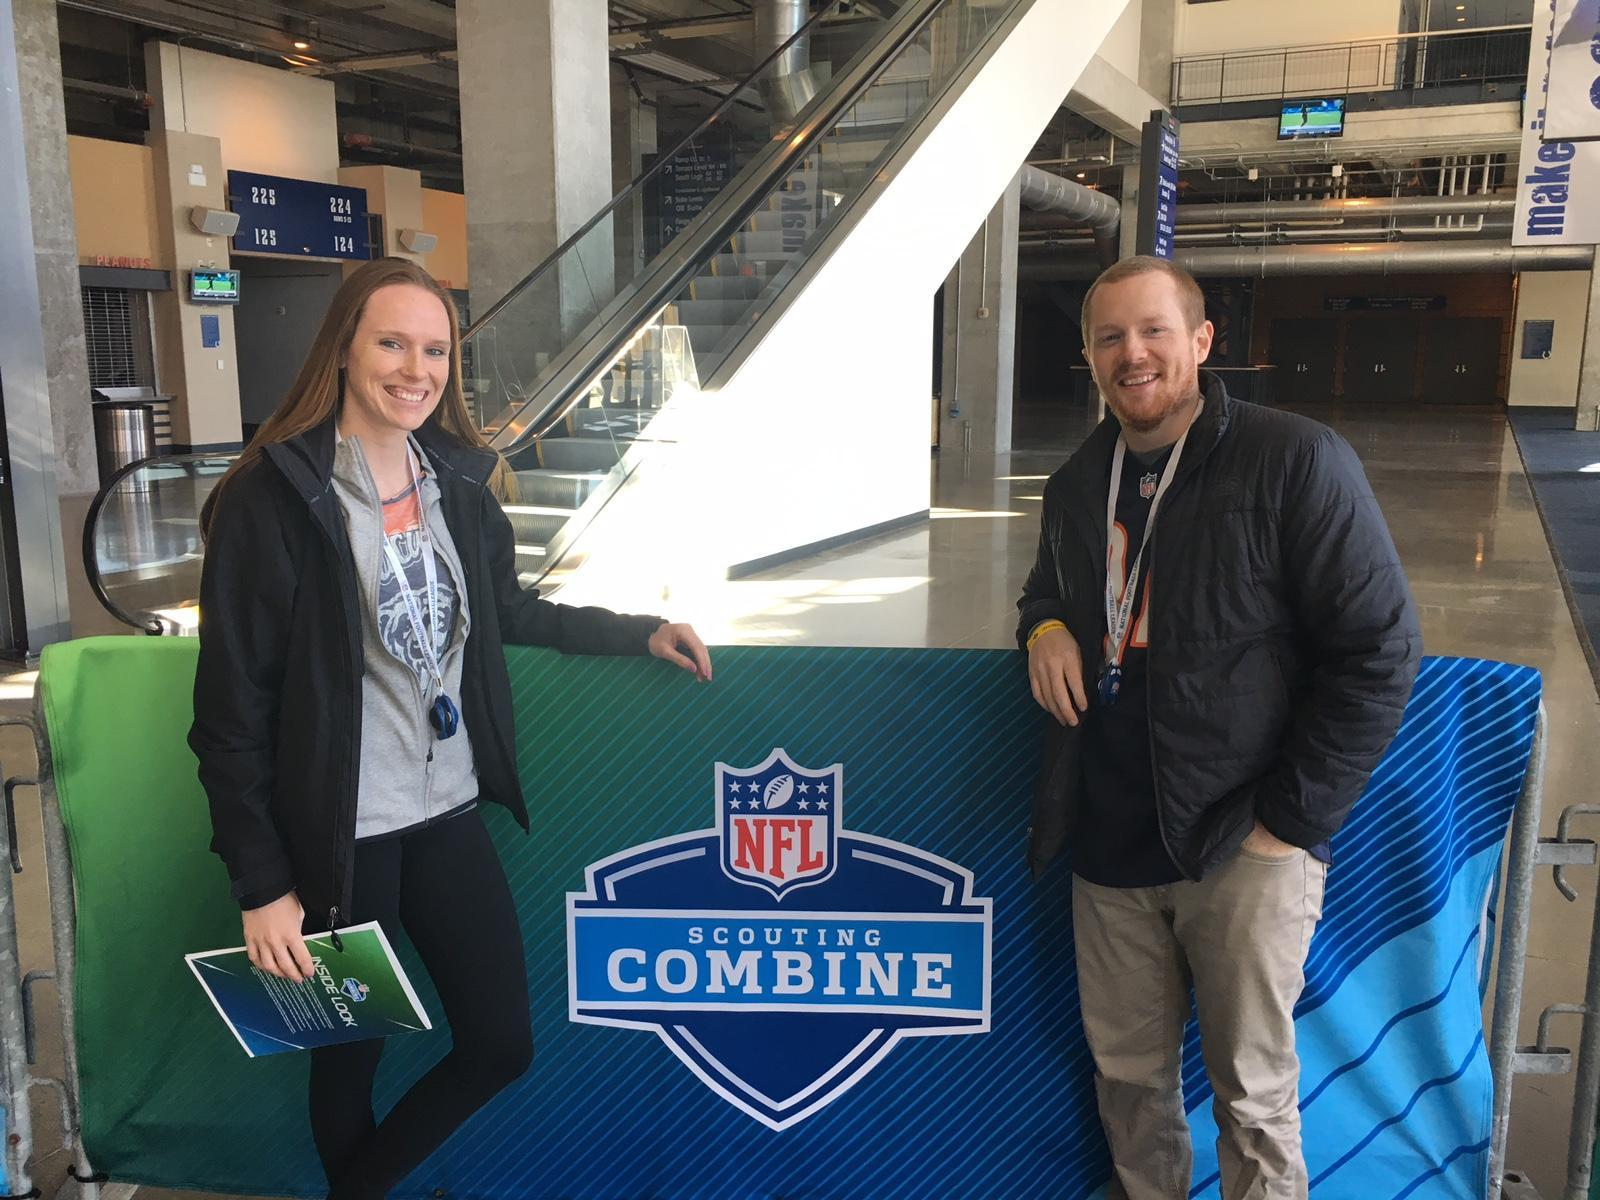 At the NFL Combine